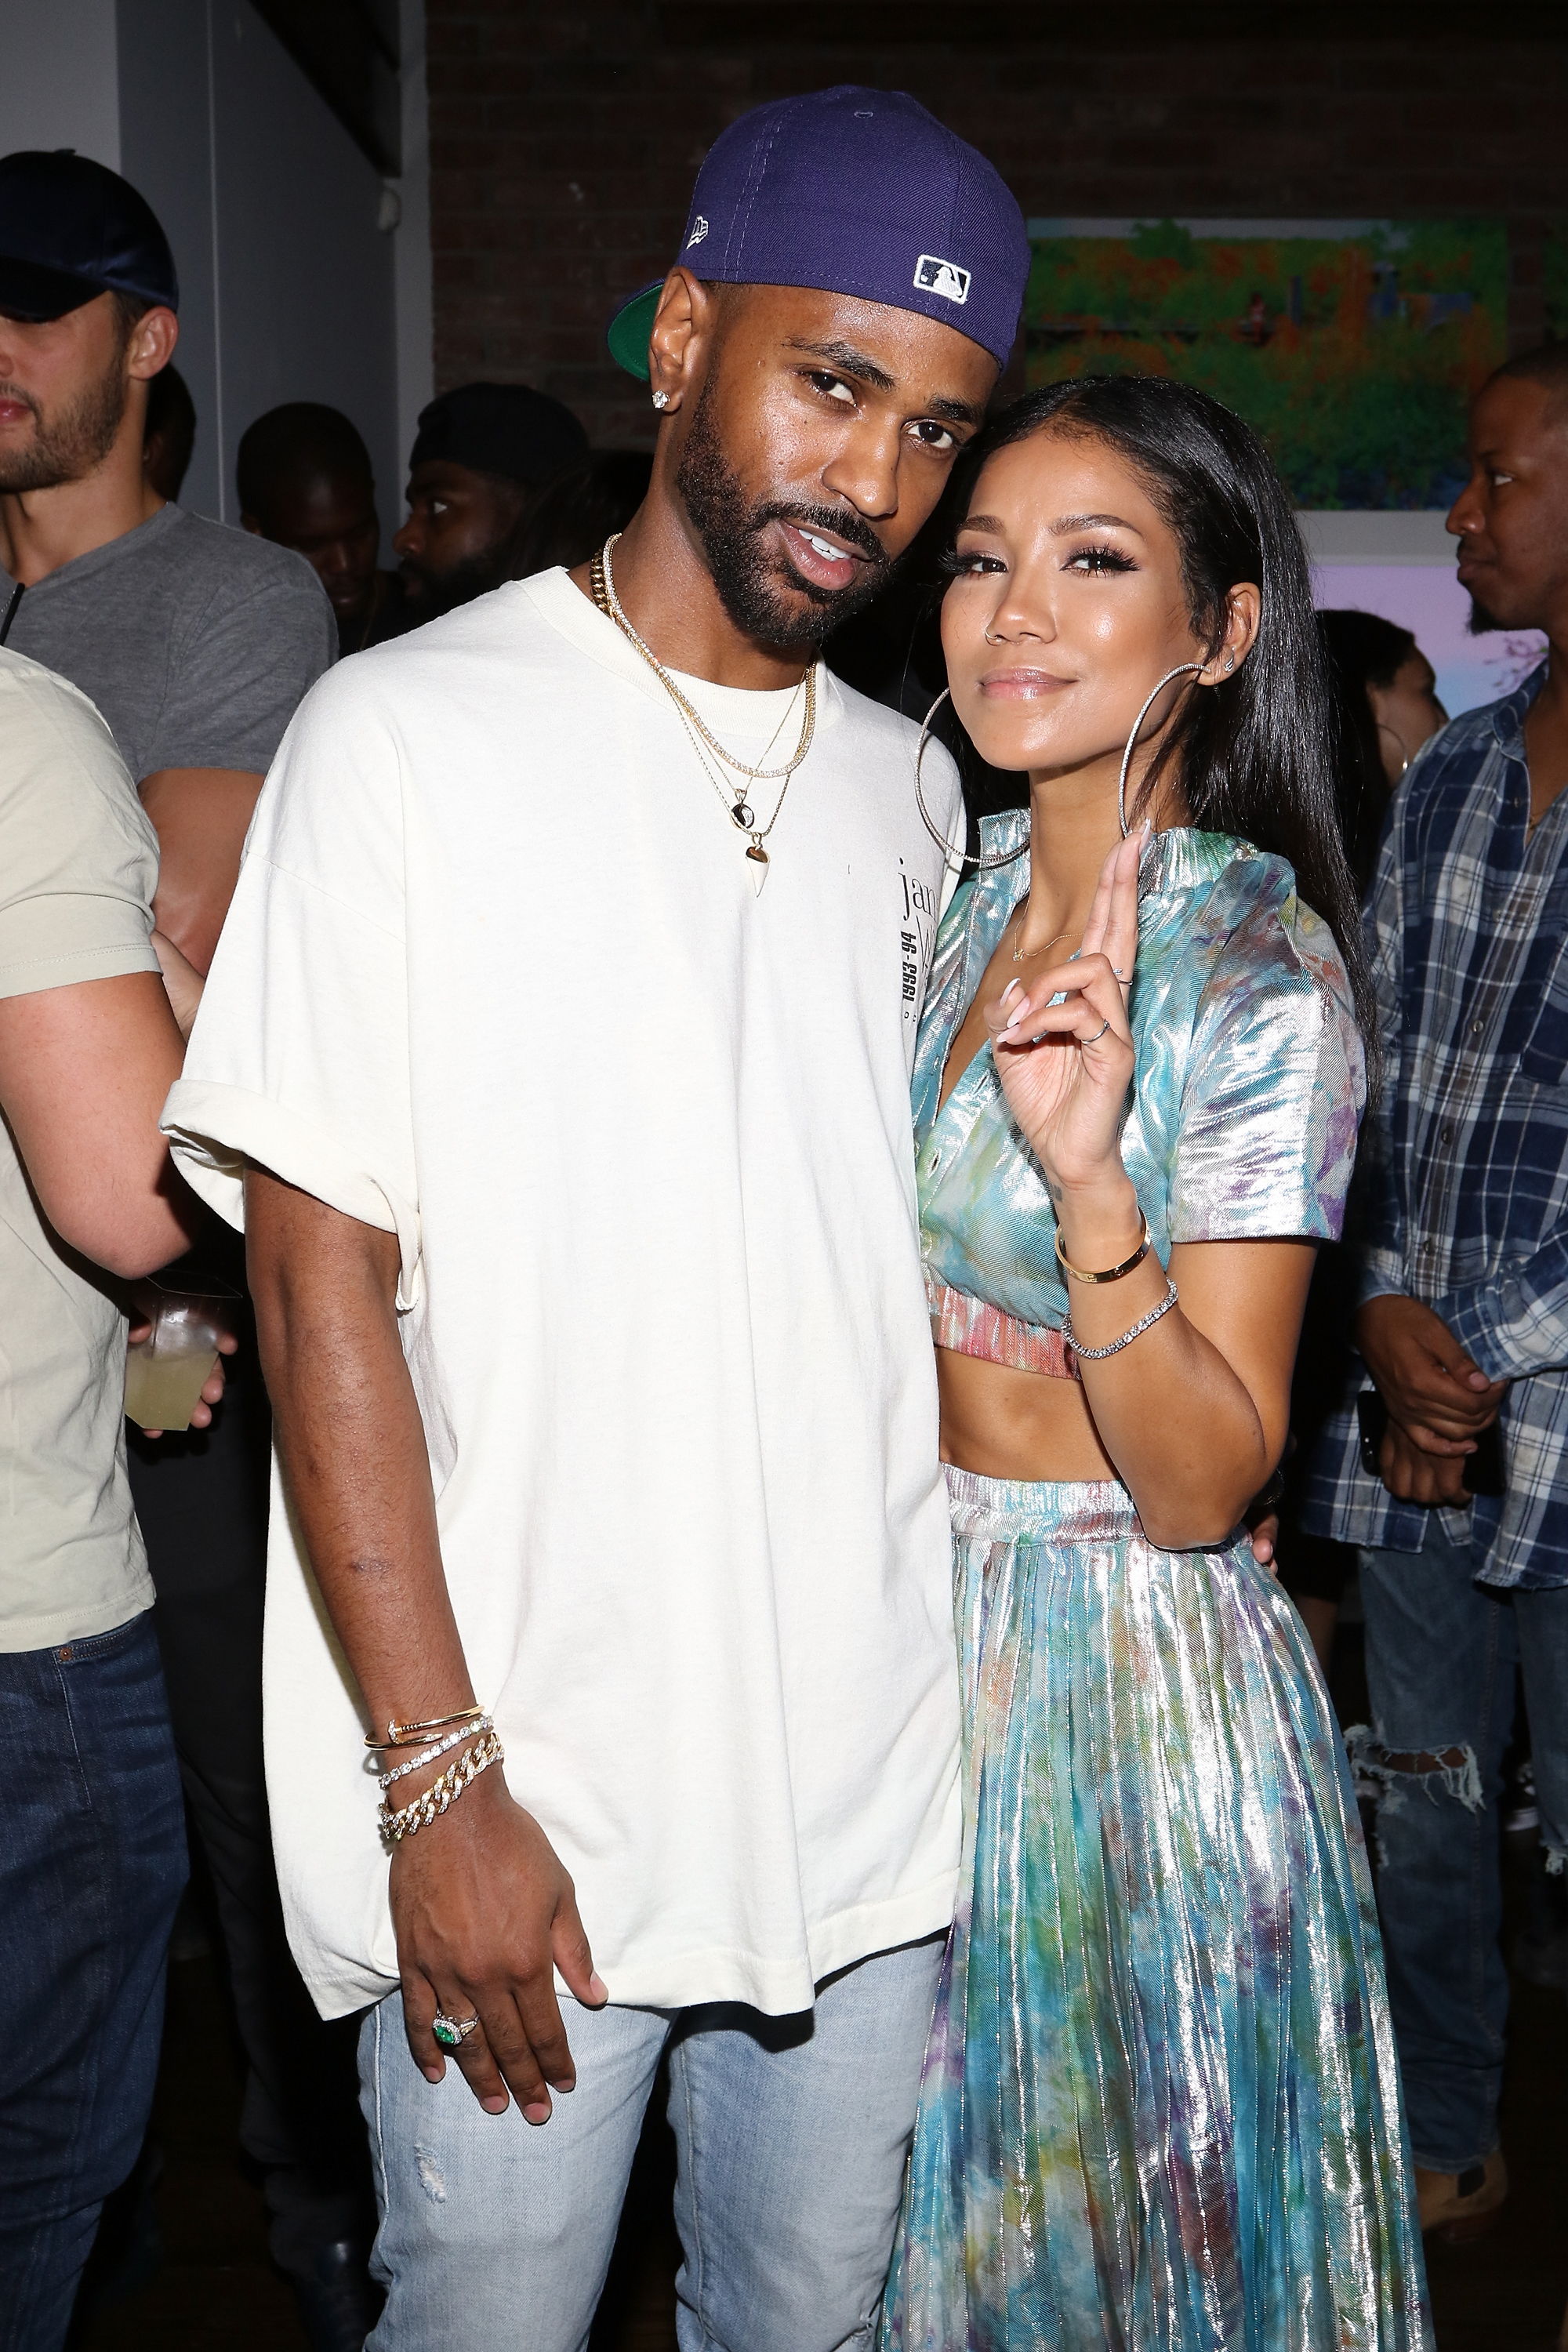 Jhene Aiko on a TRIP - An Interactive Artistic Exhibition Unveiling Jhene's M.A.P.